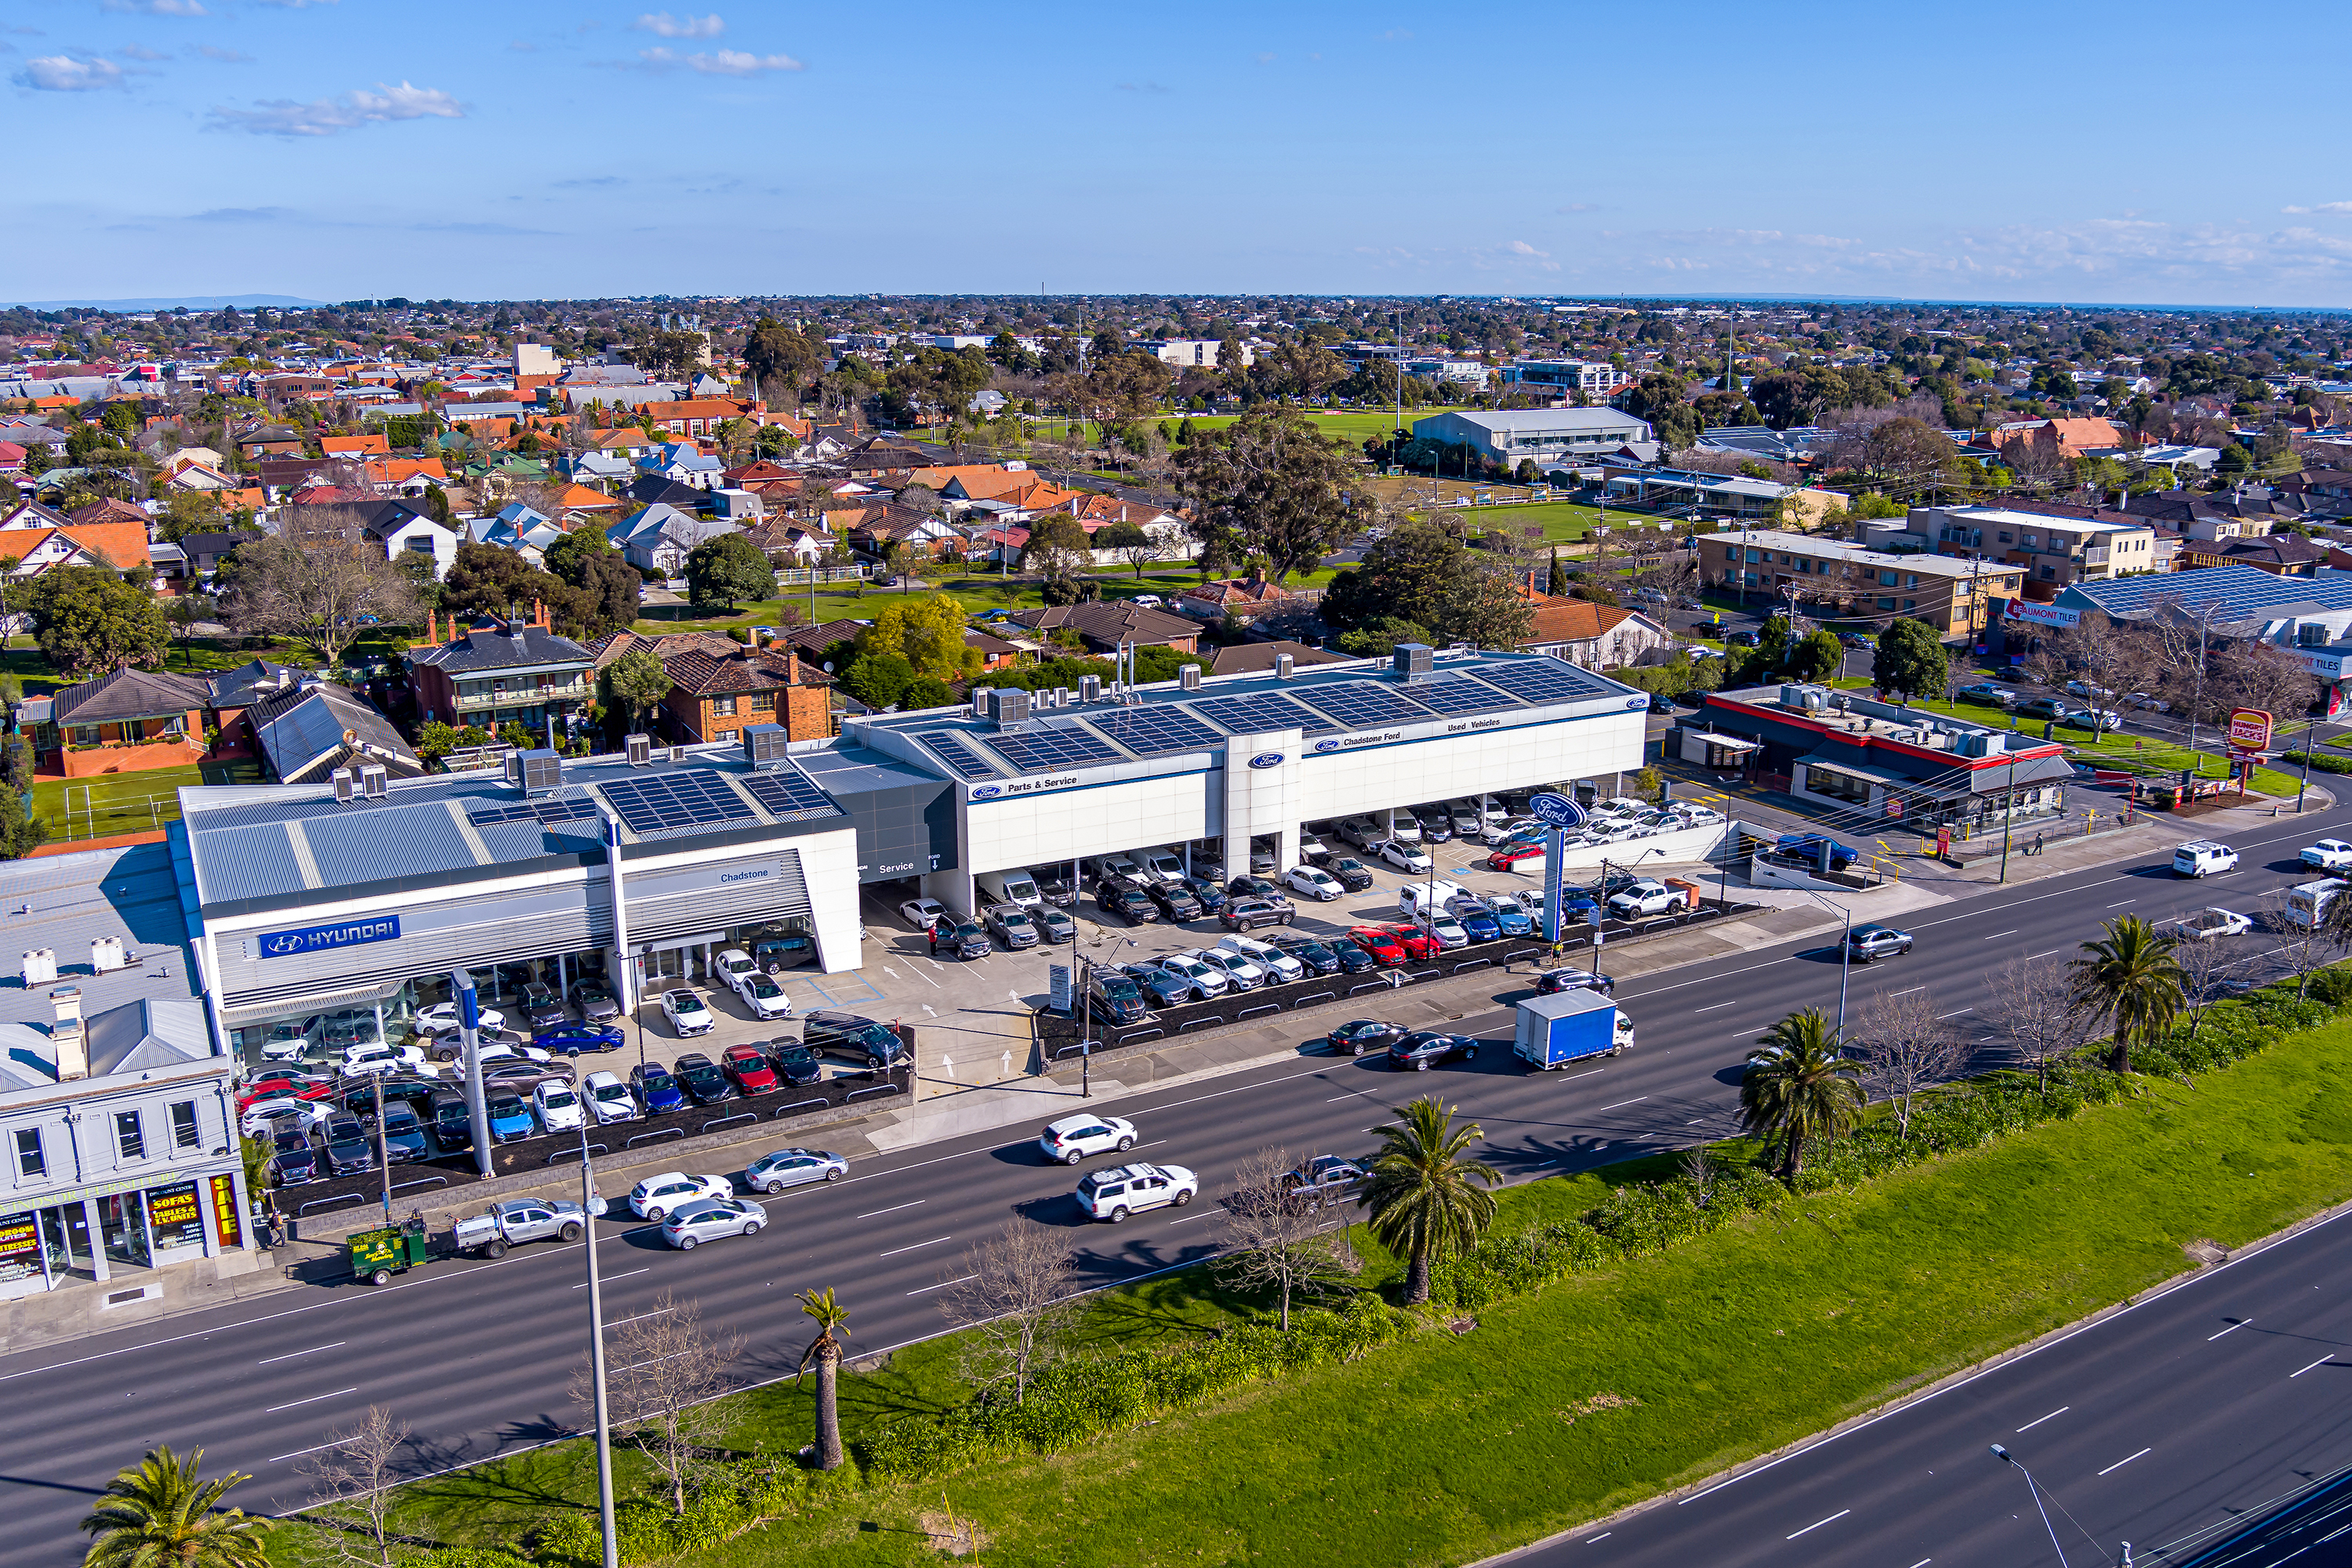 Car Dealerships Top of the Property Agenda as Chadstone Ford Site Hits the Market